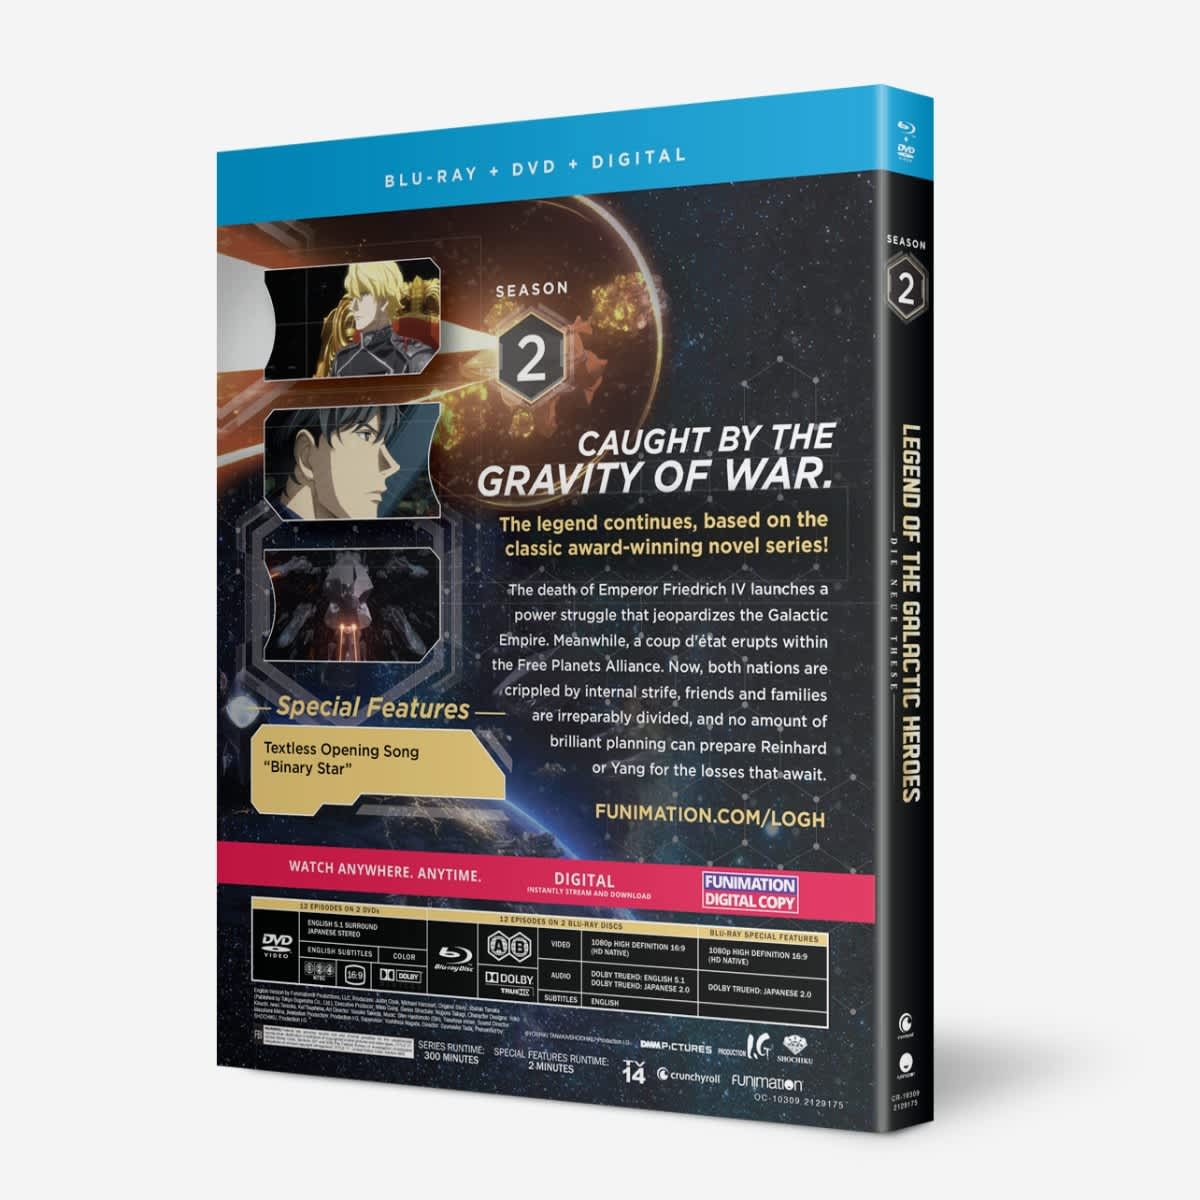 Legend of the Galactic Heroes Die Neue These Second Season 2 Blu-ray/DVD